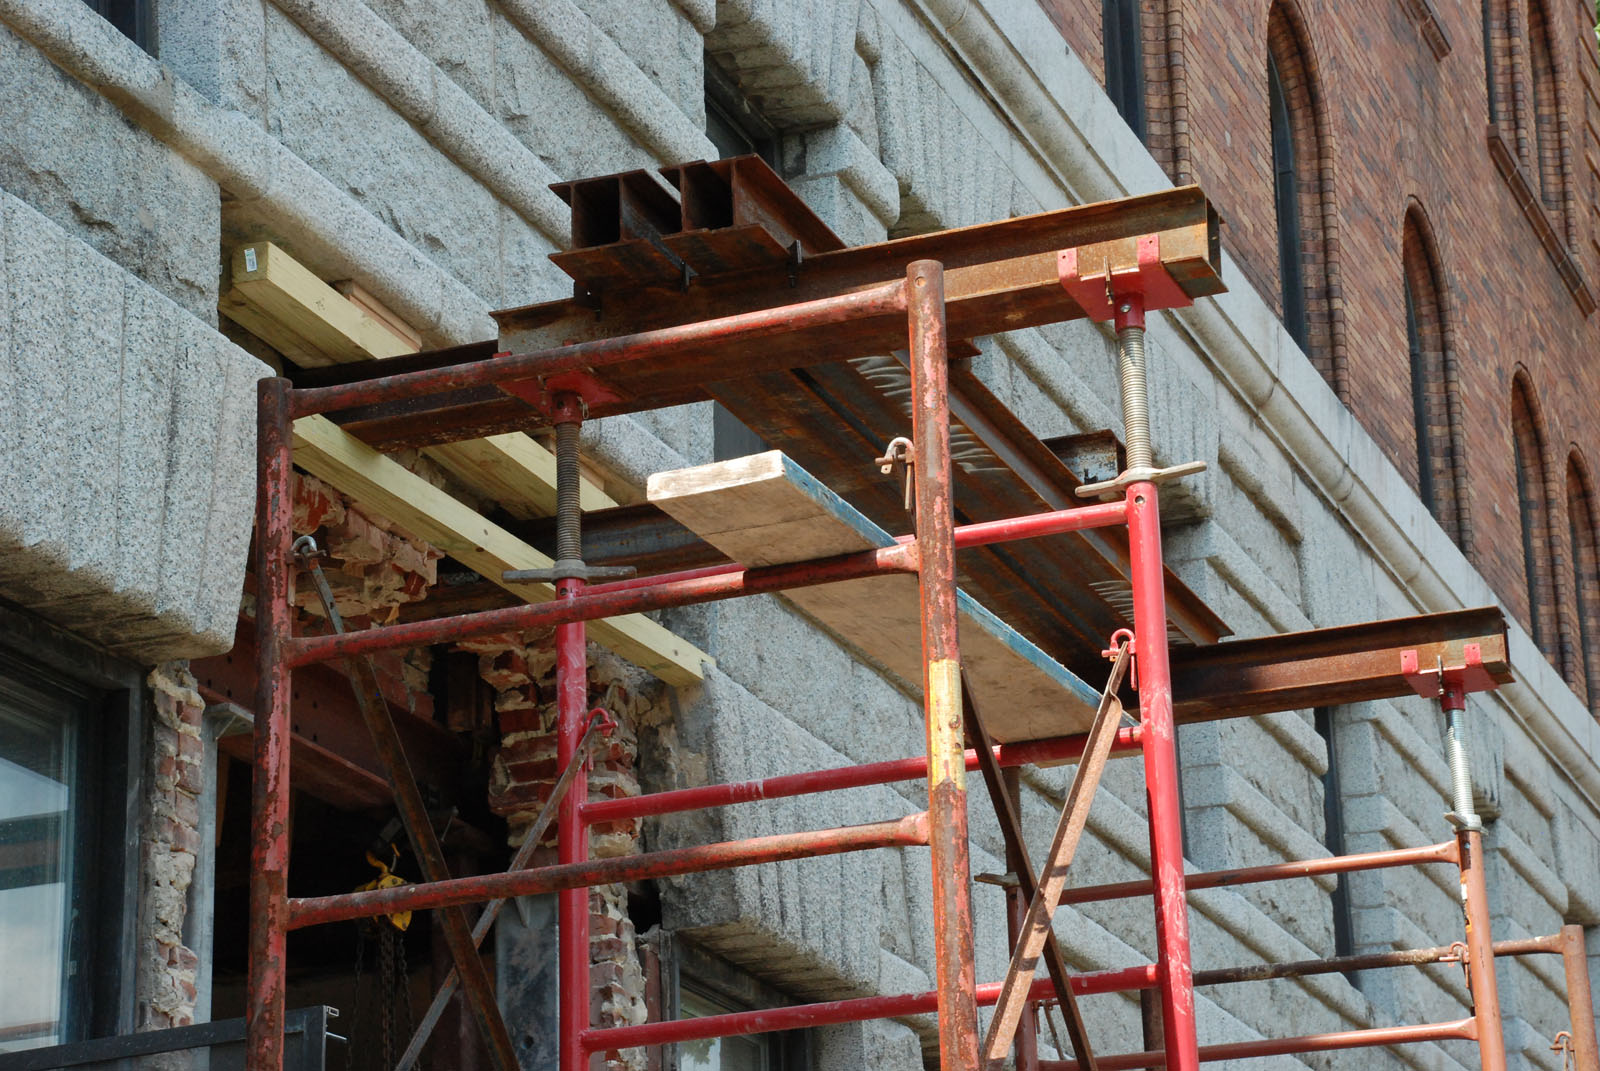 scaffold-rental-rent-scaffolding-superior-scaffold-shoring-princeton-university-160